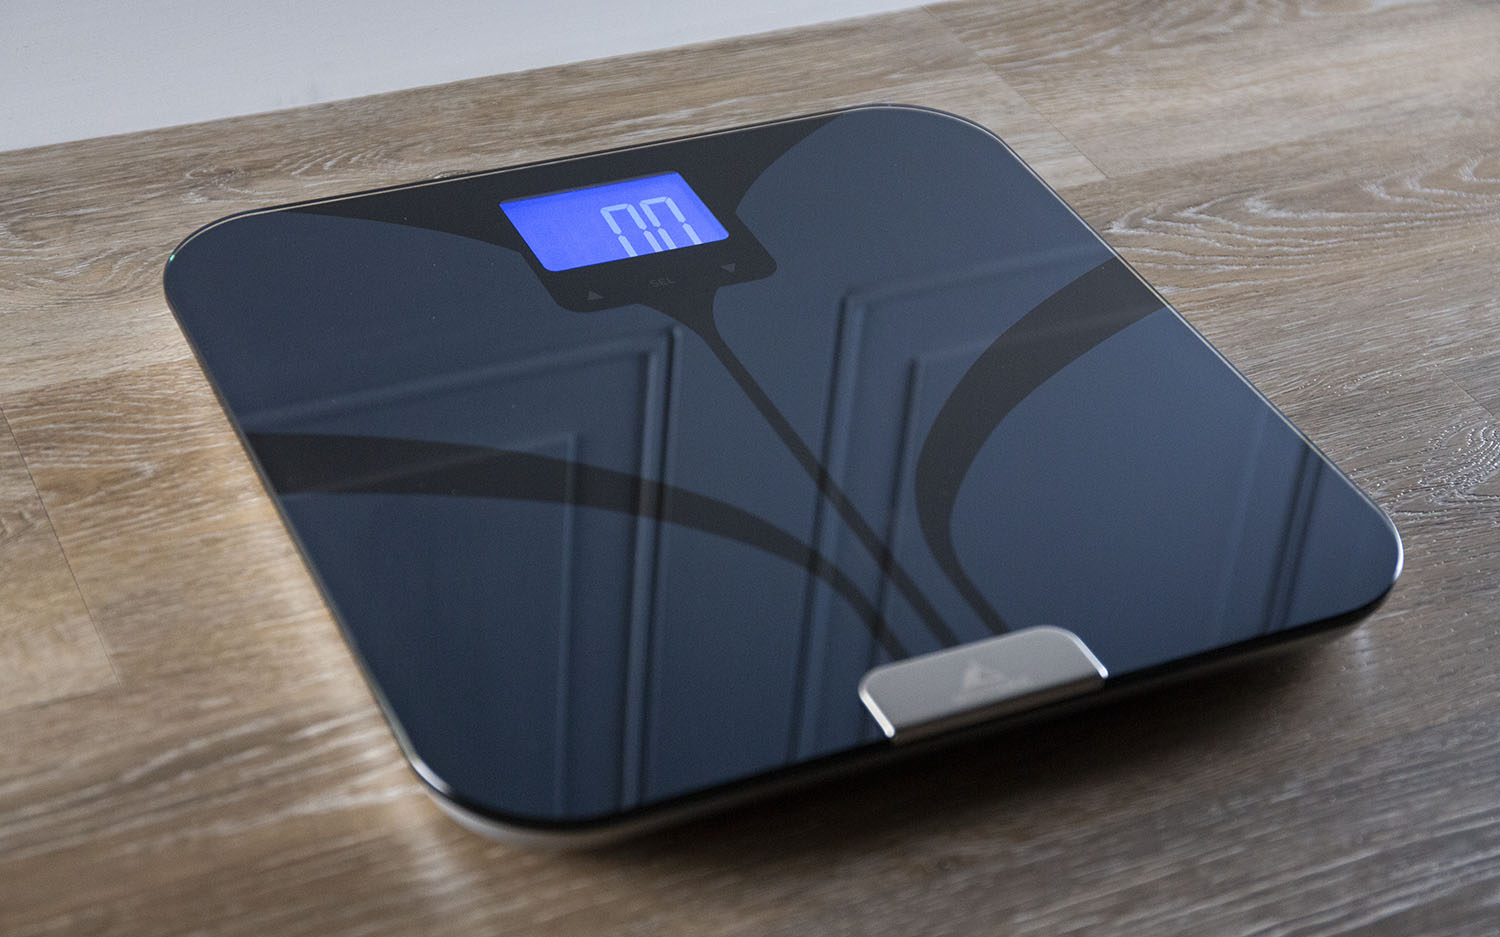 Best Smart Scales 2019 - Android, iOS Compatible Bathroom